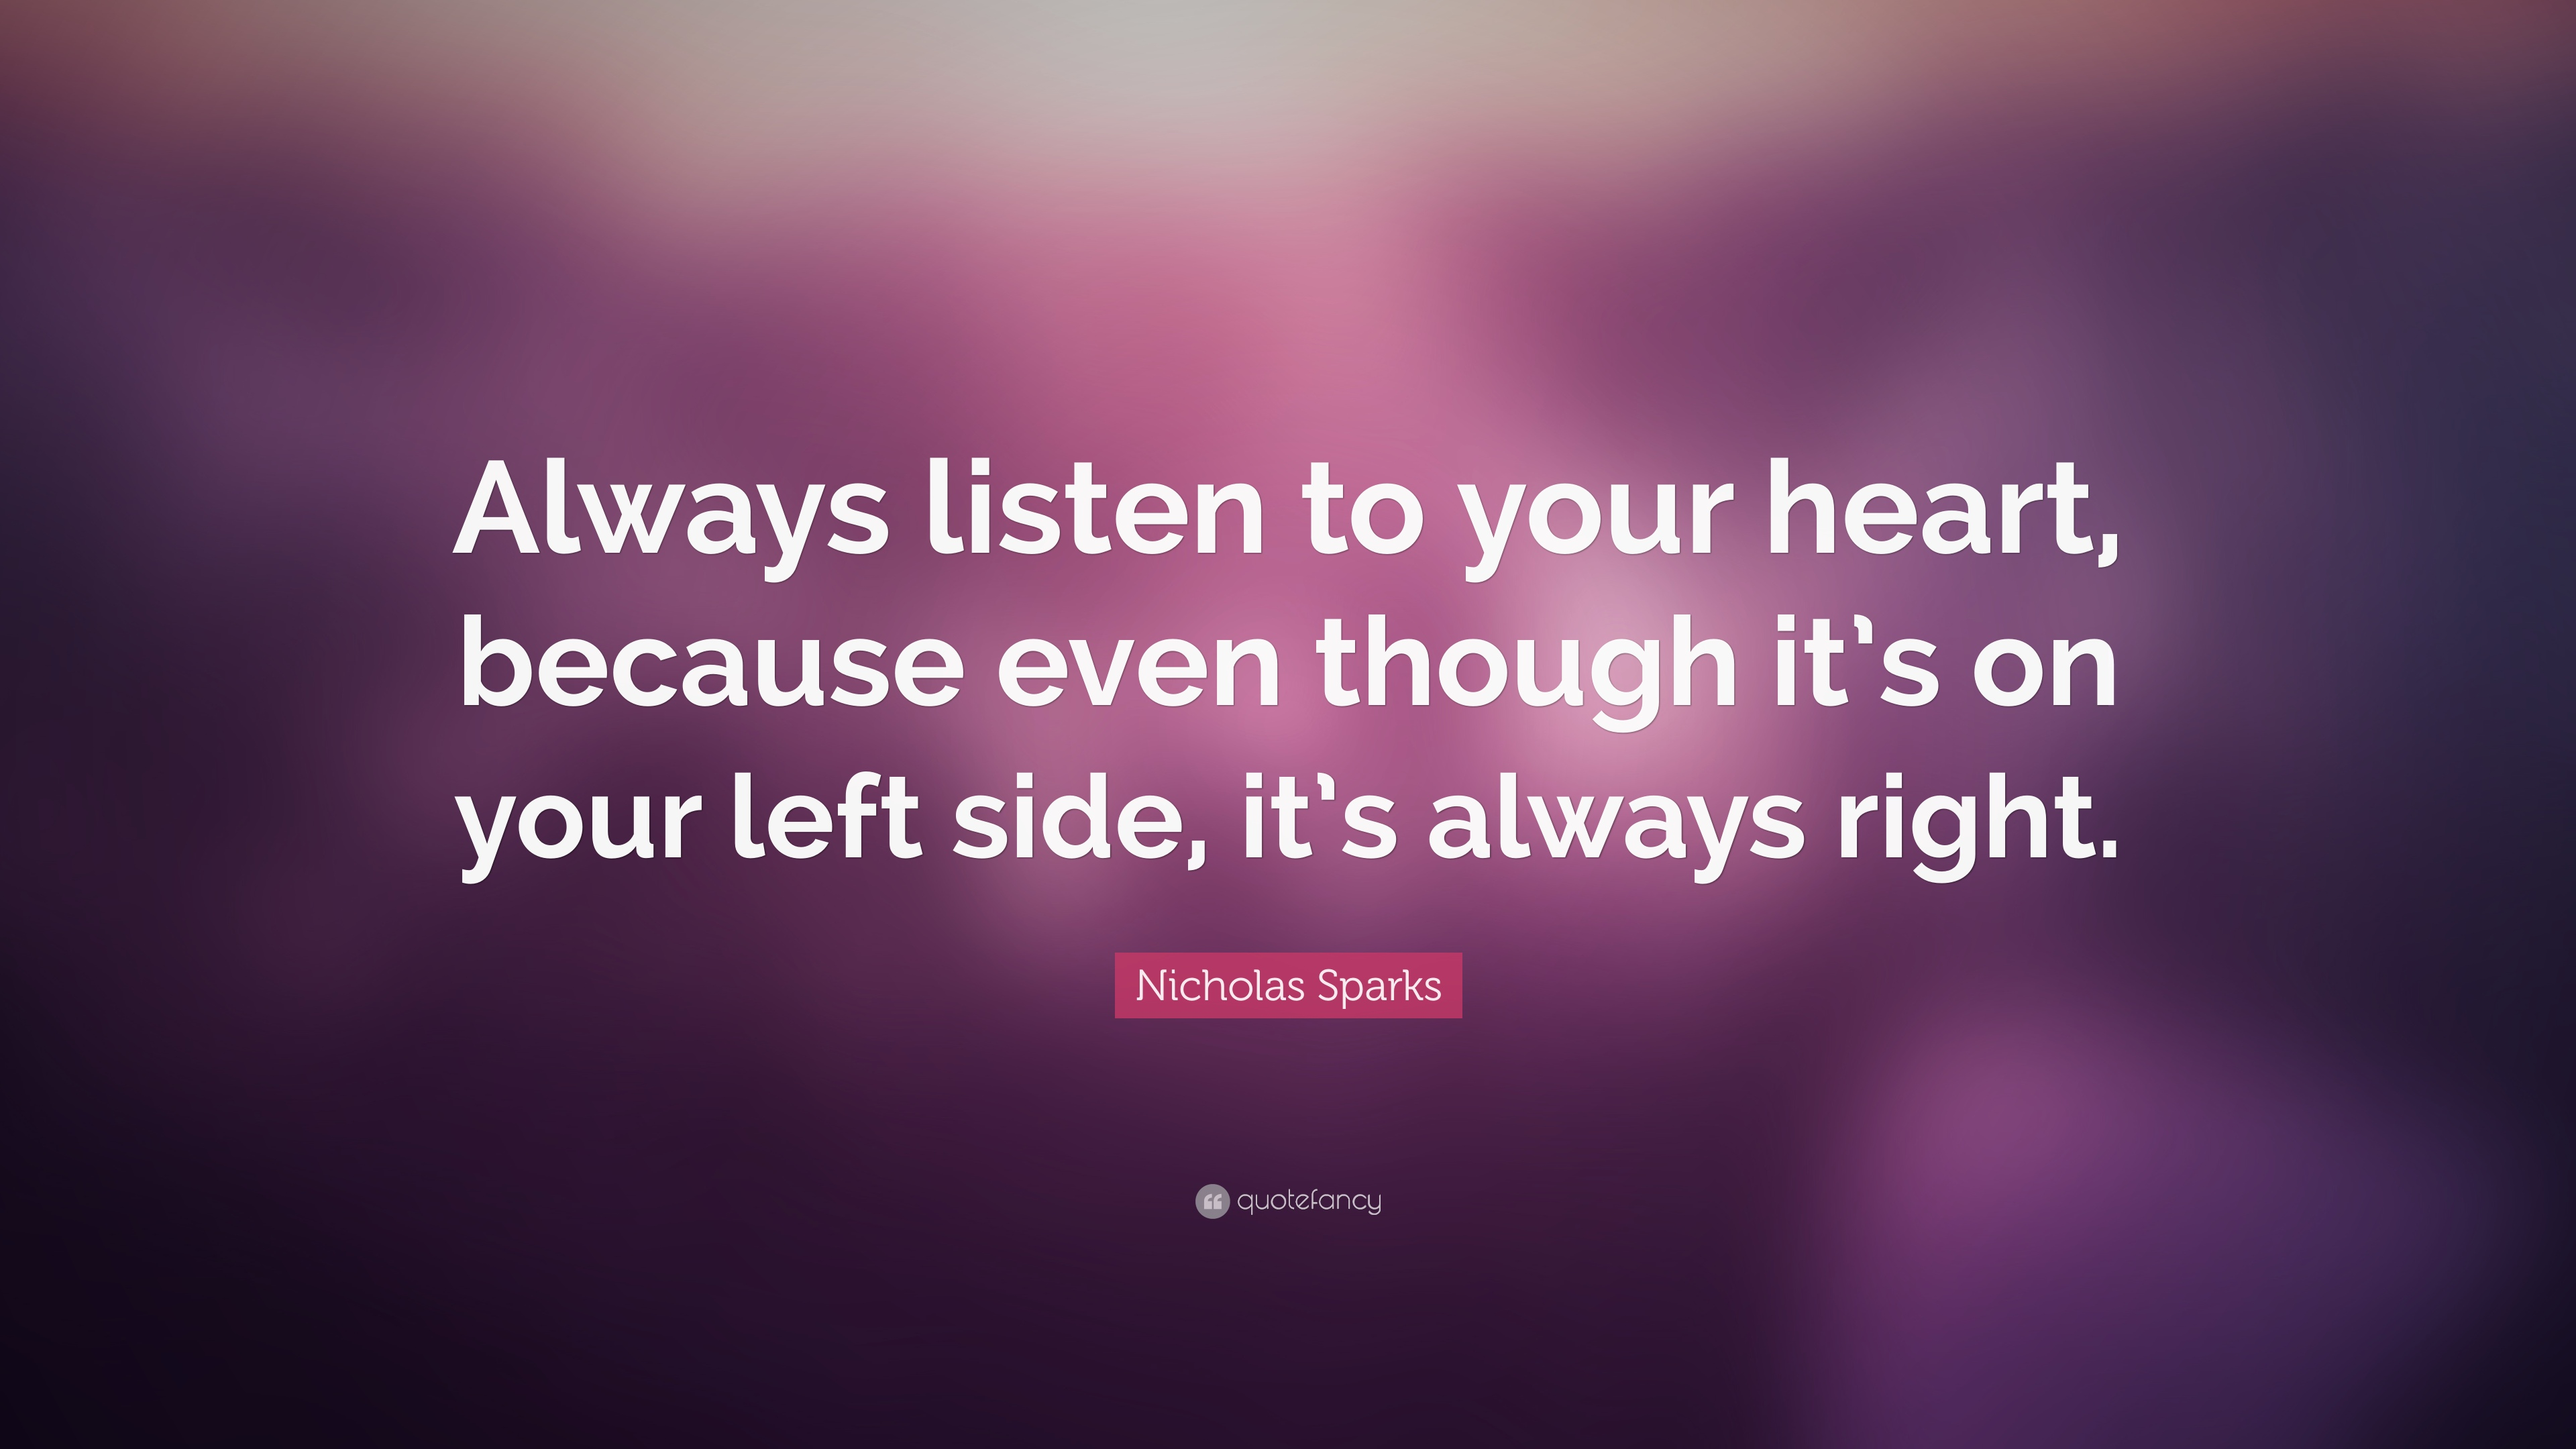 Nicholas Sparks Quote: U201cAlways Listen To Your Heart, Because Even Though  Itu0027s On